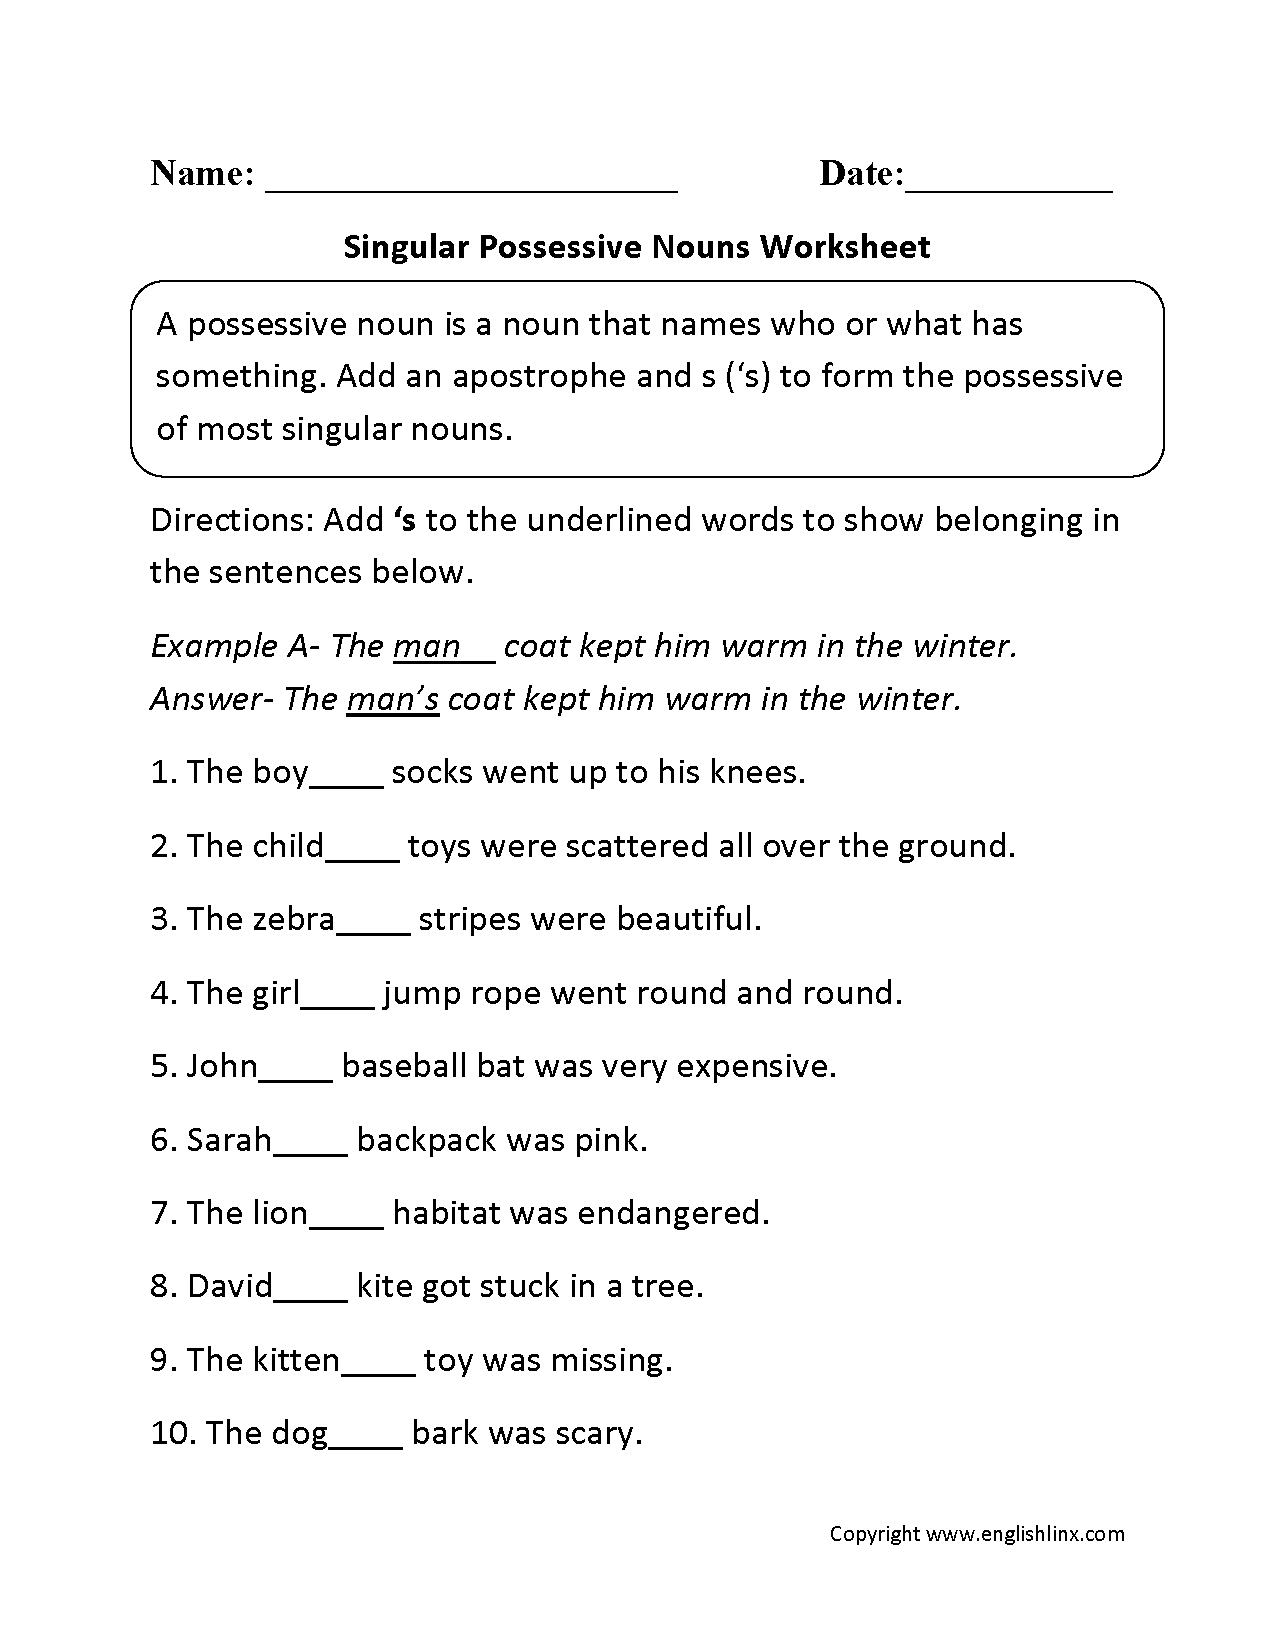 Possessive Nouns Worksheets First Grade | Homeshealth.info